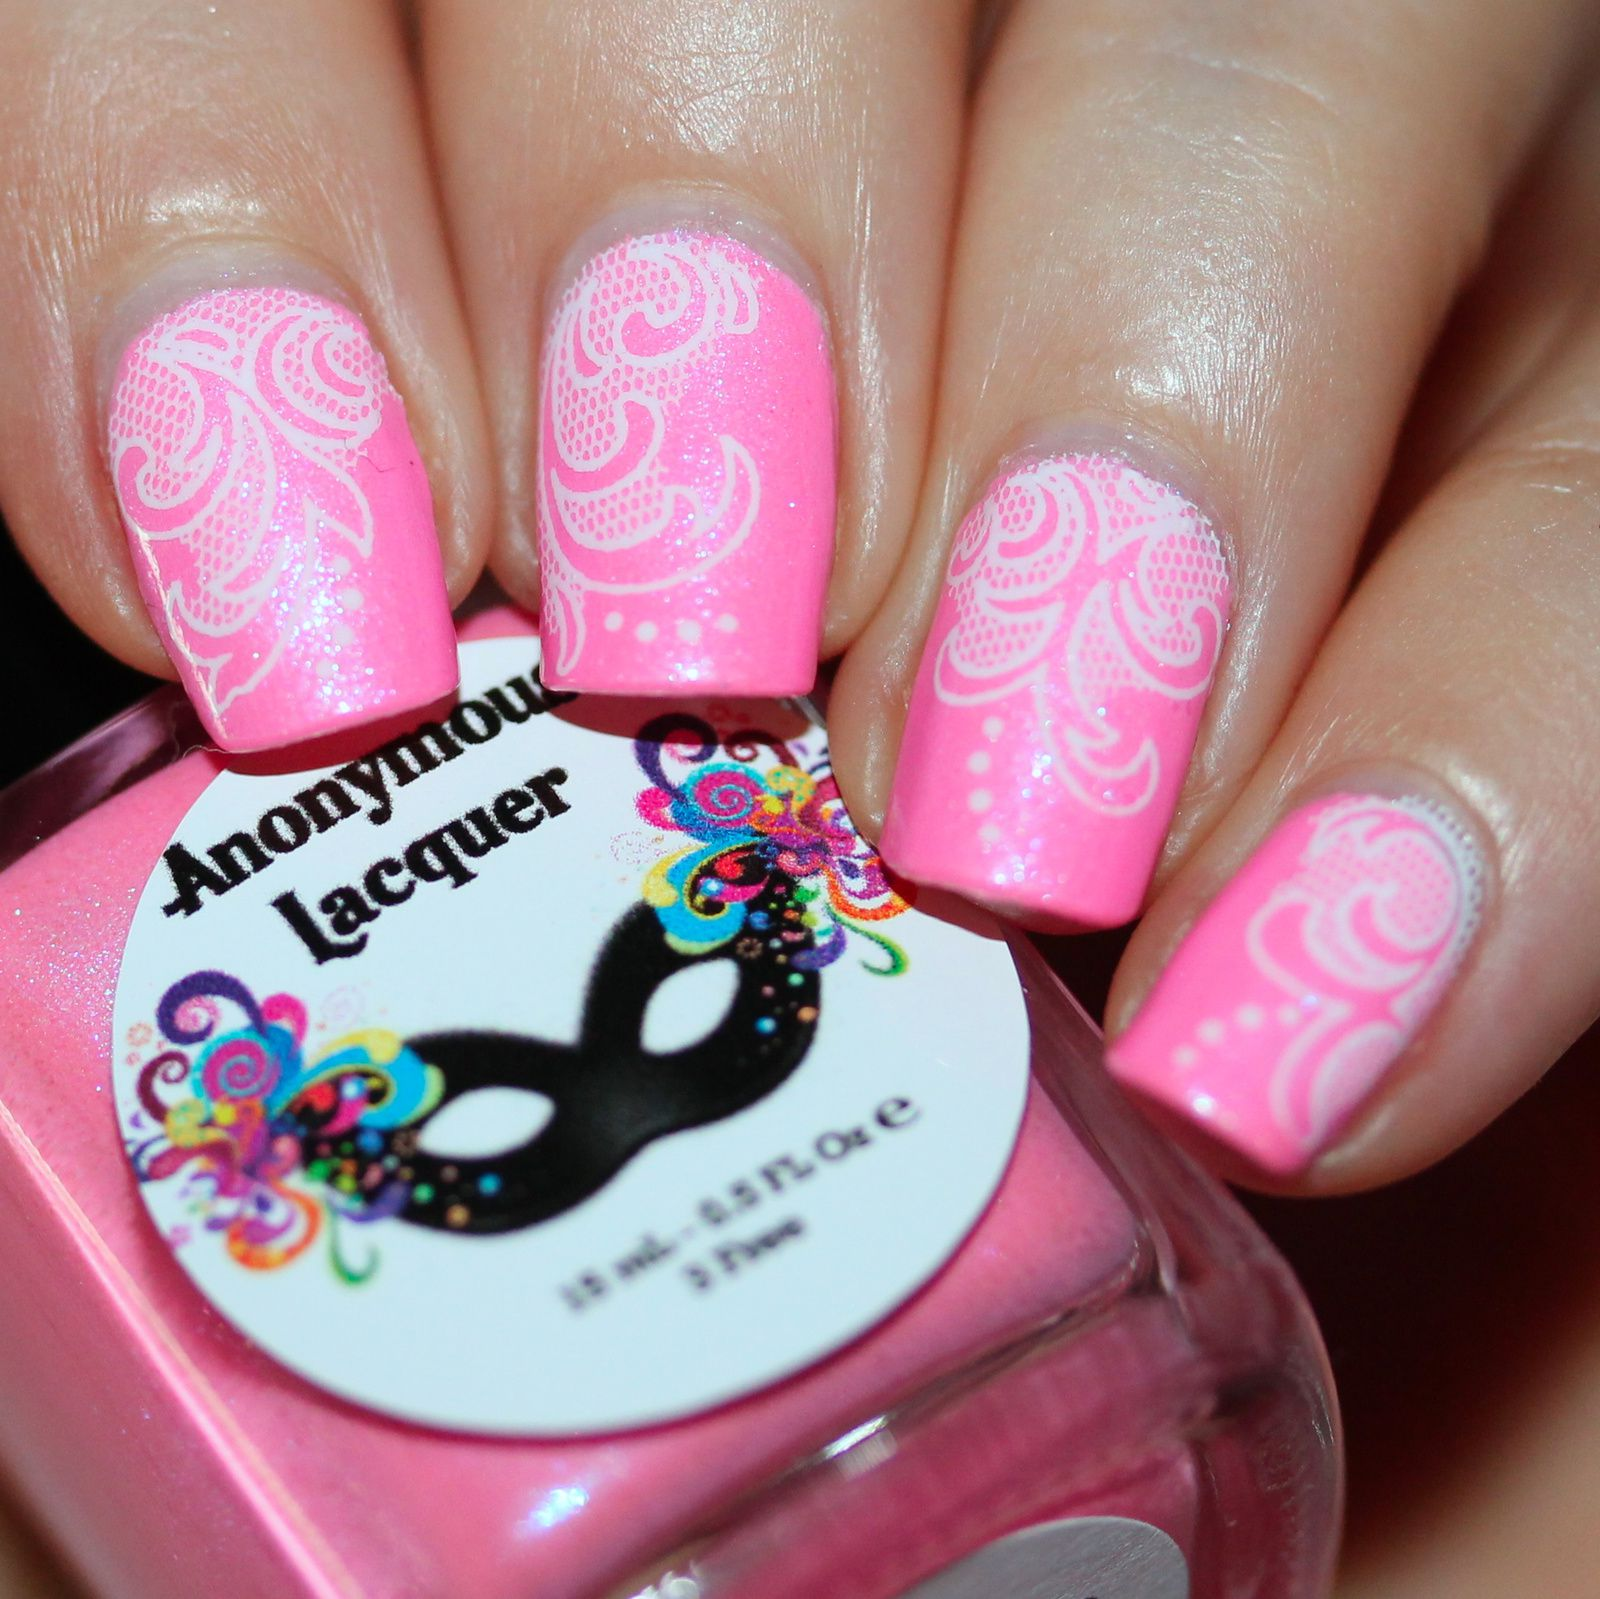 Essie Protein Base Coat / Anonymous Lacquer Pink-nik in the Park / Adnails white lace decals / HK Girl Top Coat